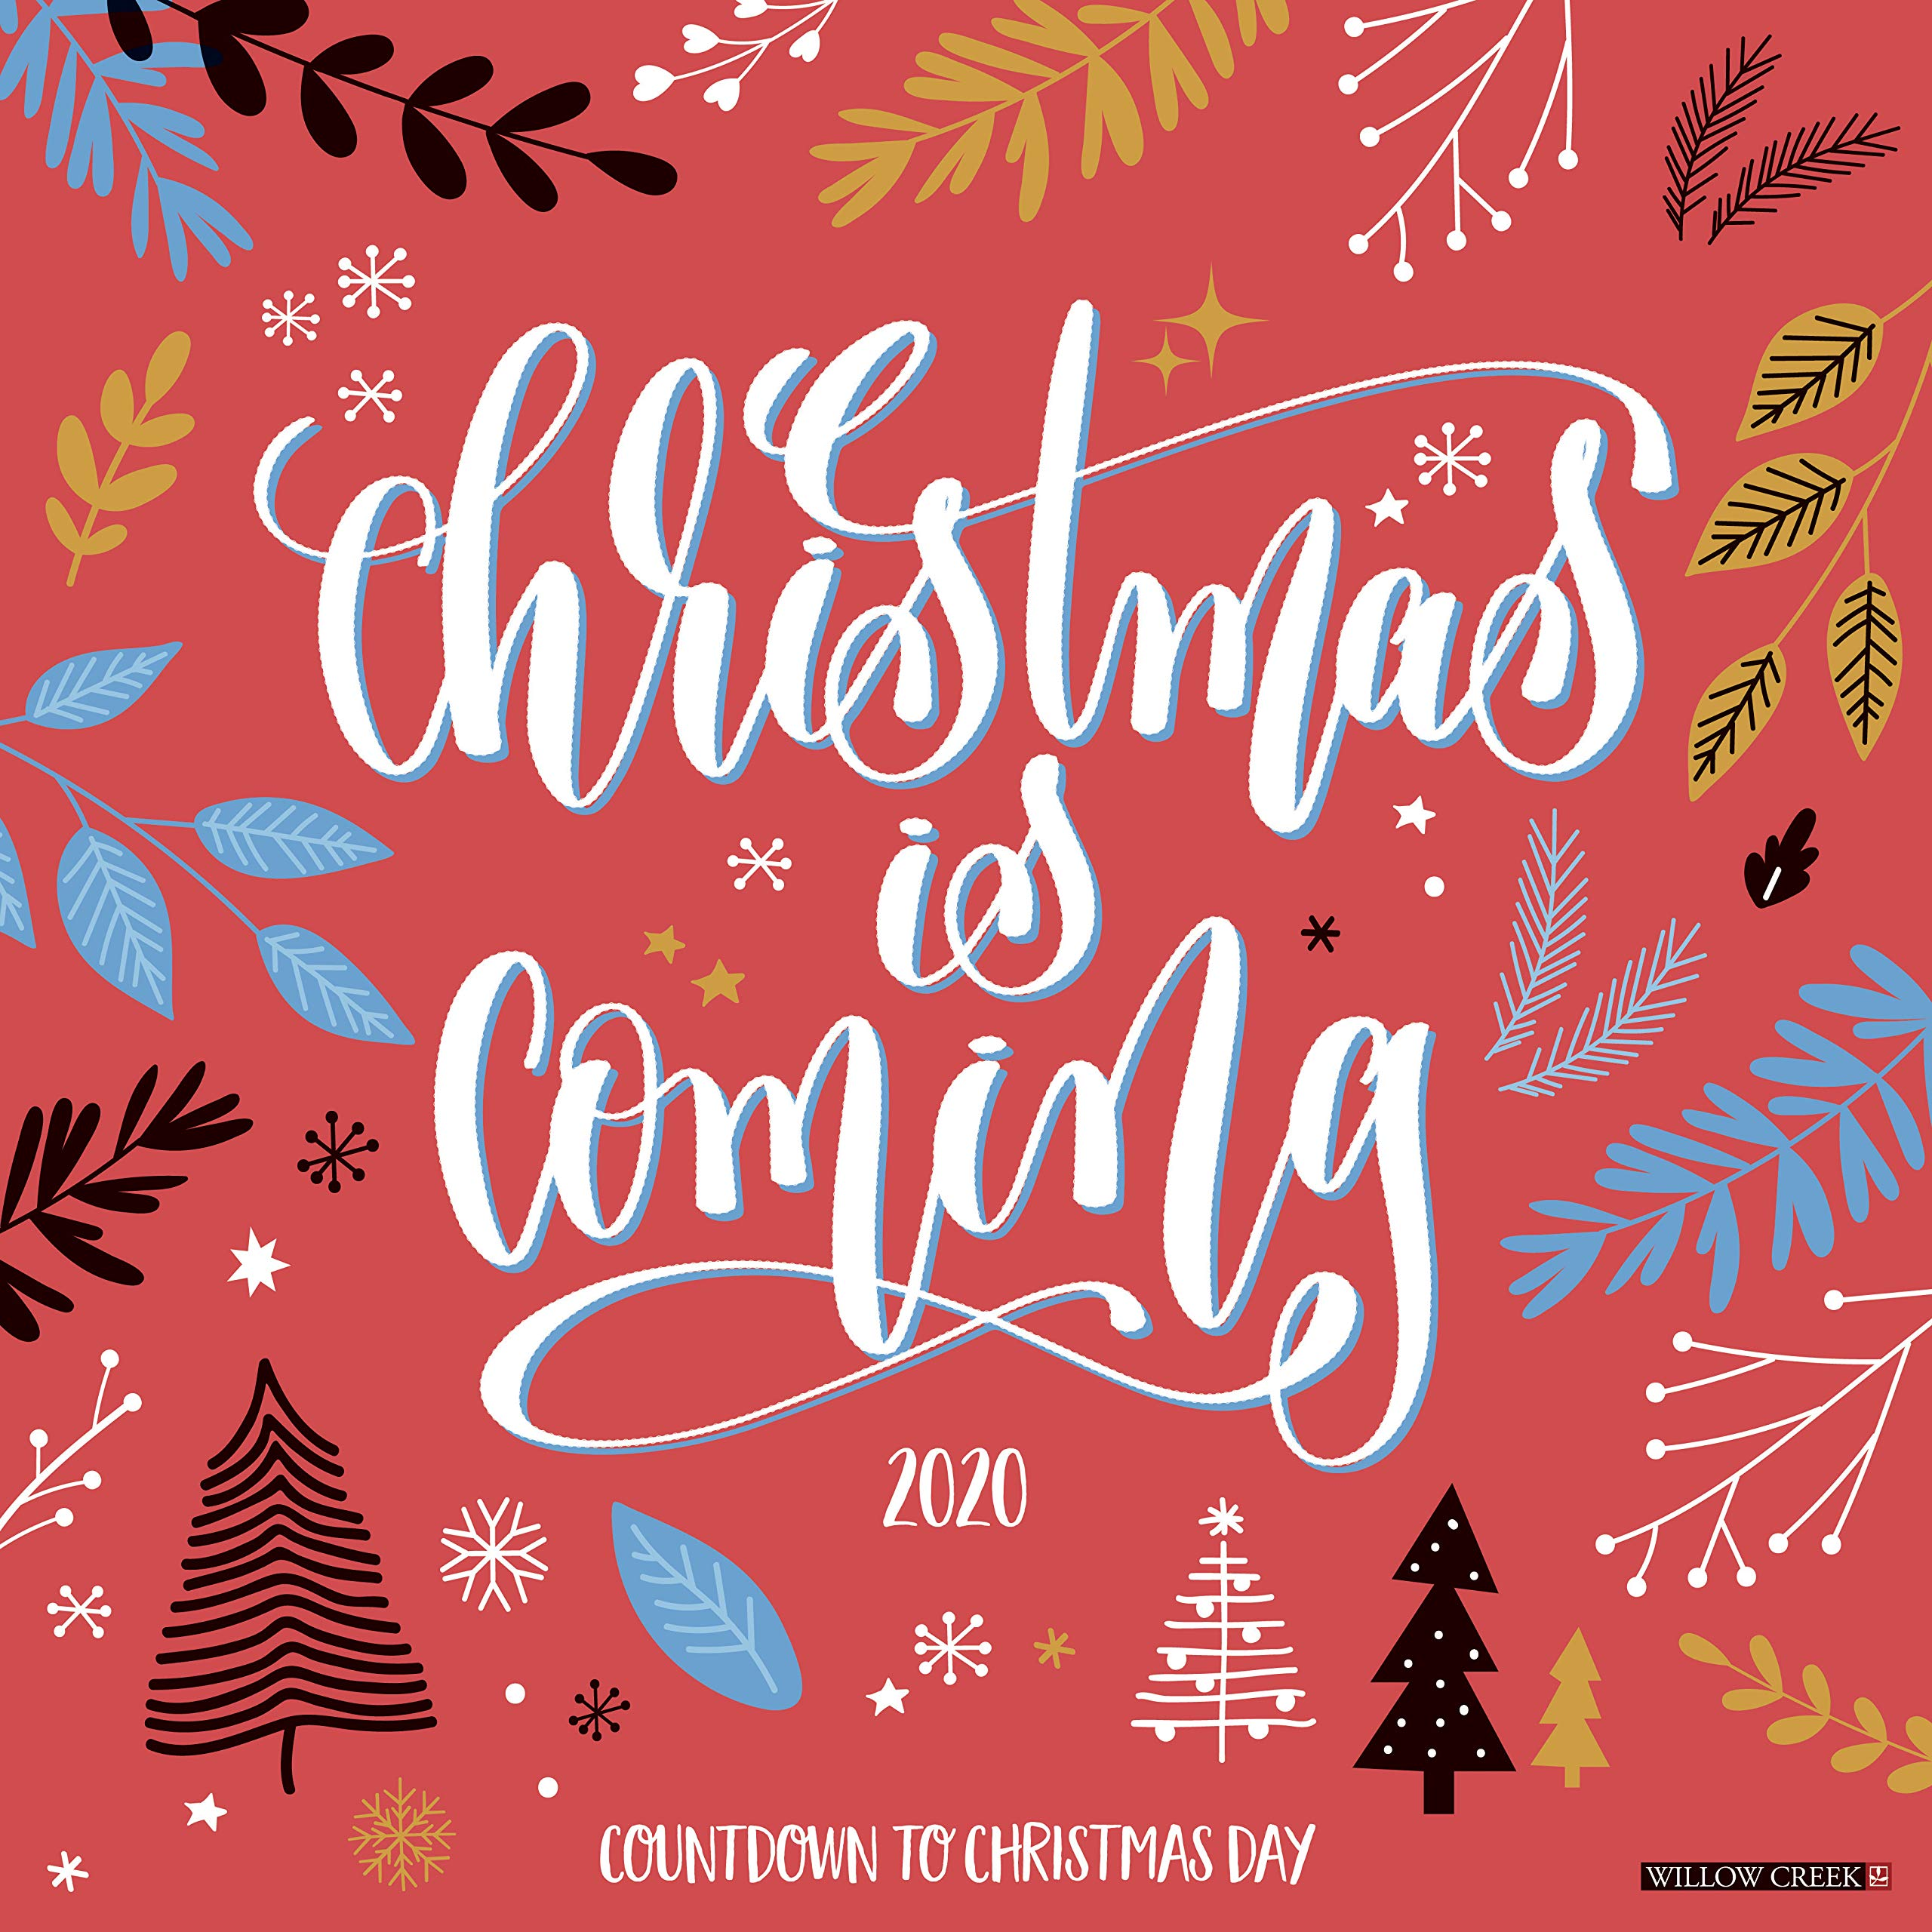 Christmas 2020 Christmas is Coming 2020 Wall Calendar: Willow Creek Press